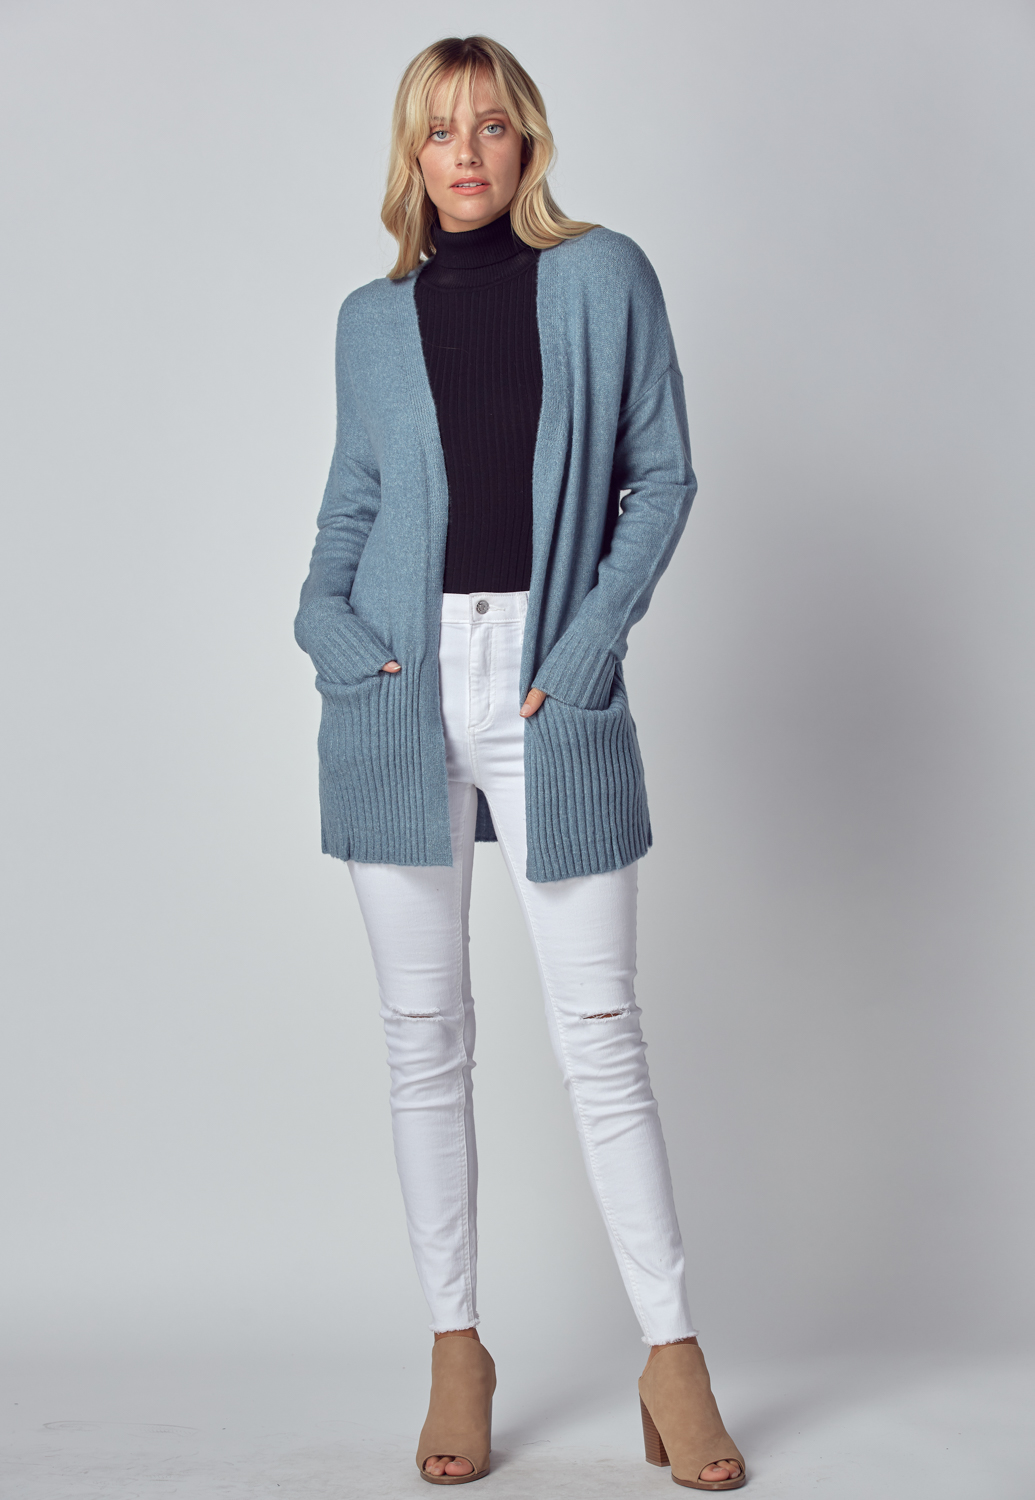 Basic Knit Sweater Long Cardigan